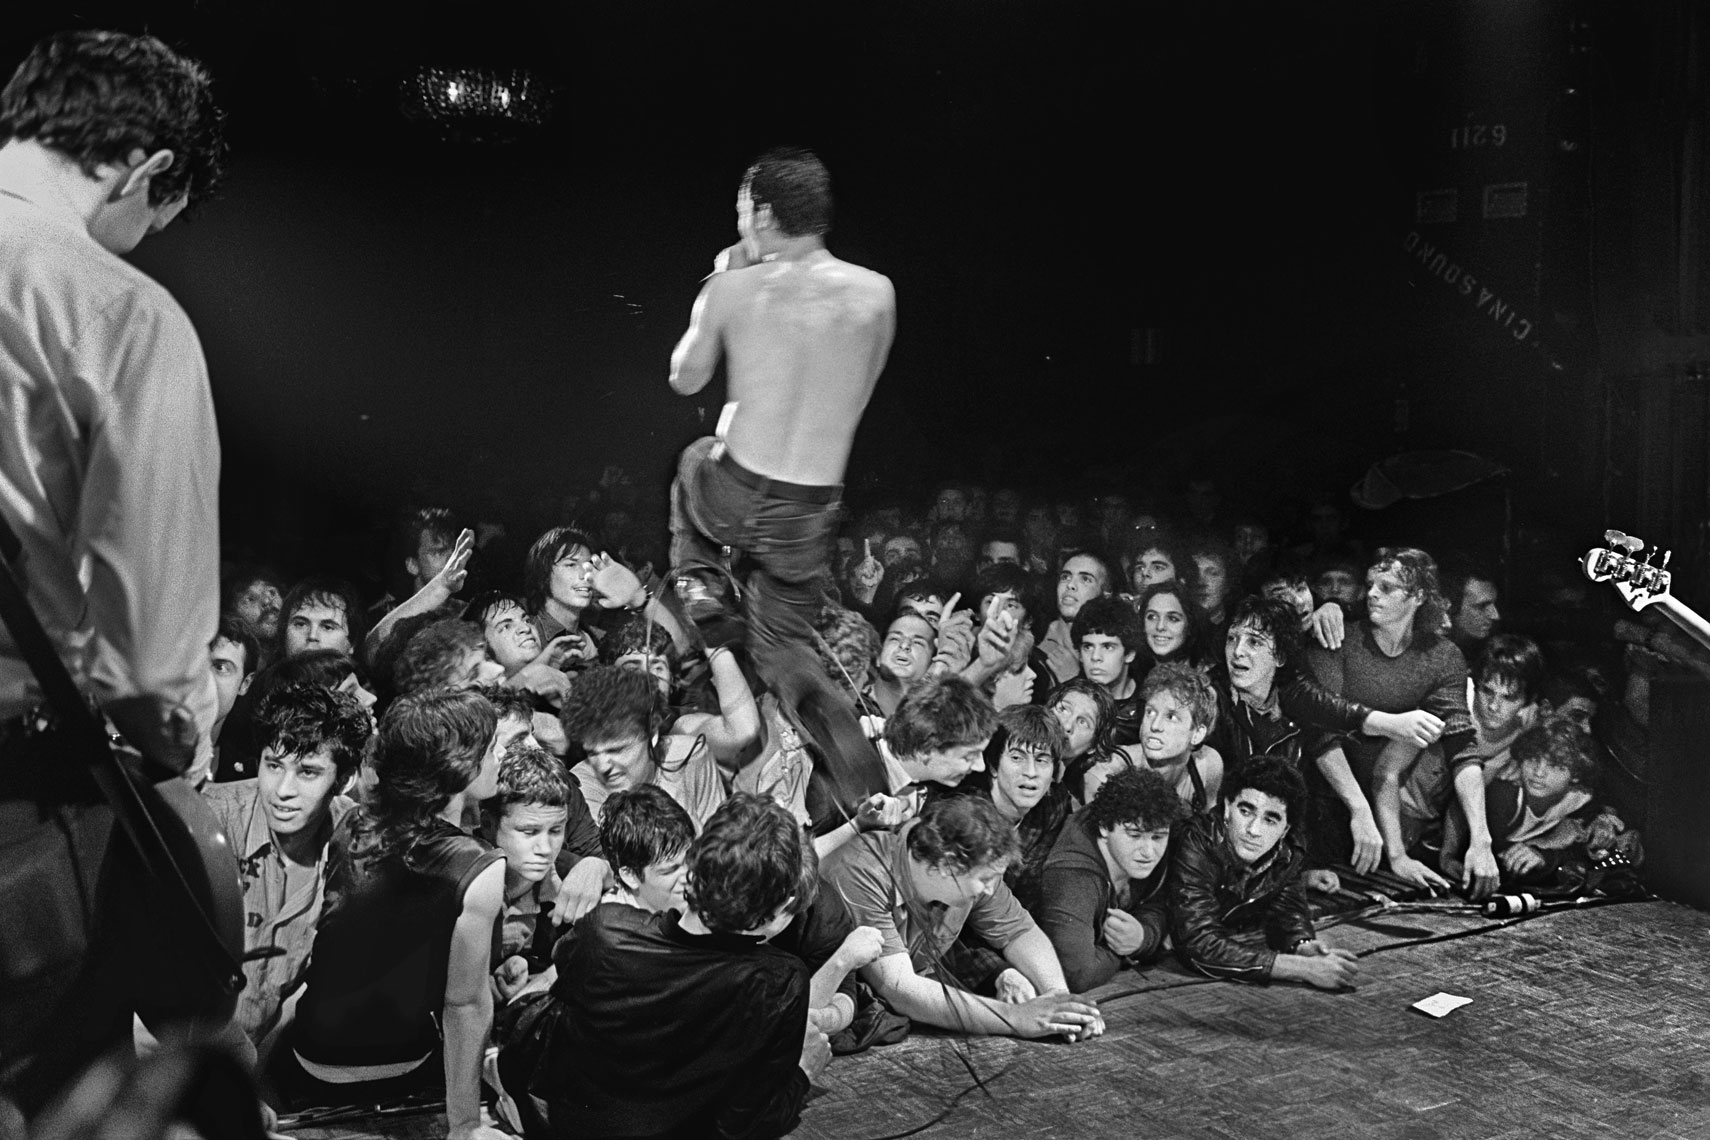 23_Jello-stage-dives_Dead-Kennedys_Irving-Plaza_0581.jpg